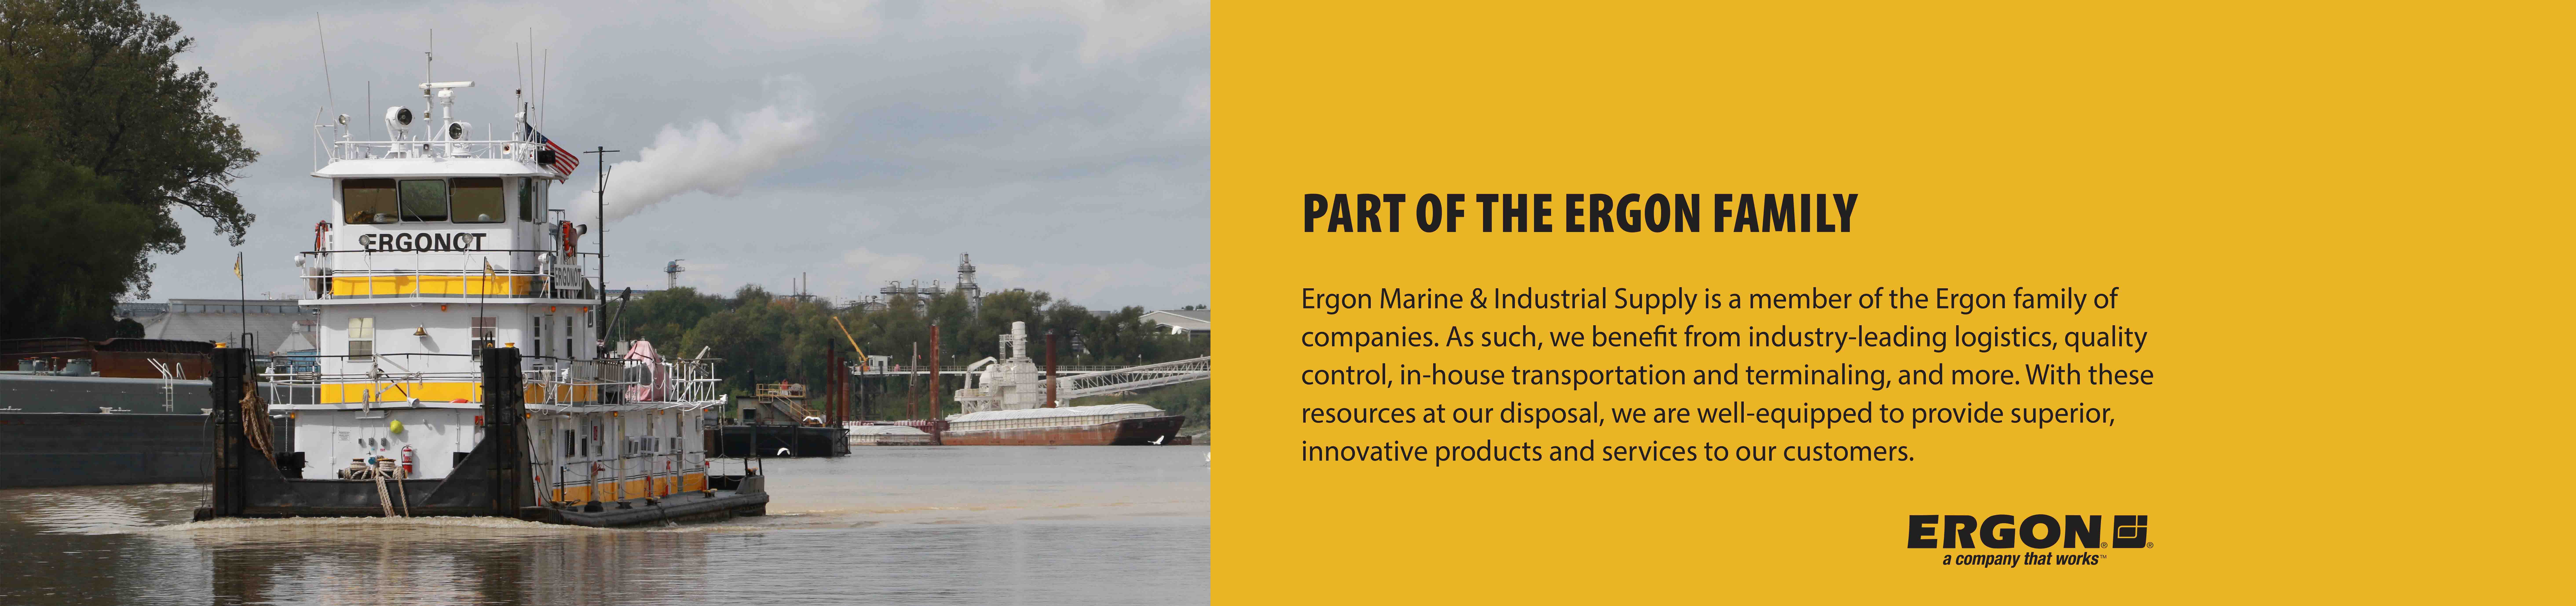 Ergon Marine Industrial Supply